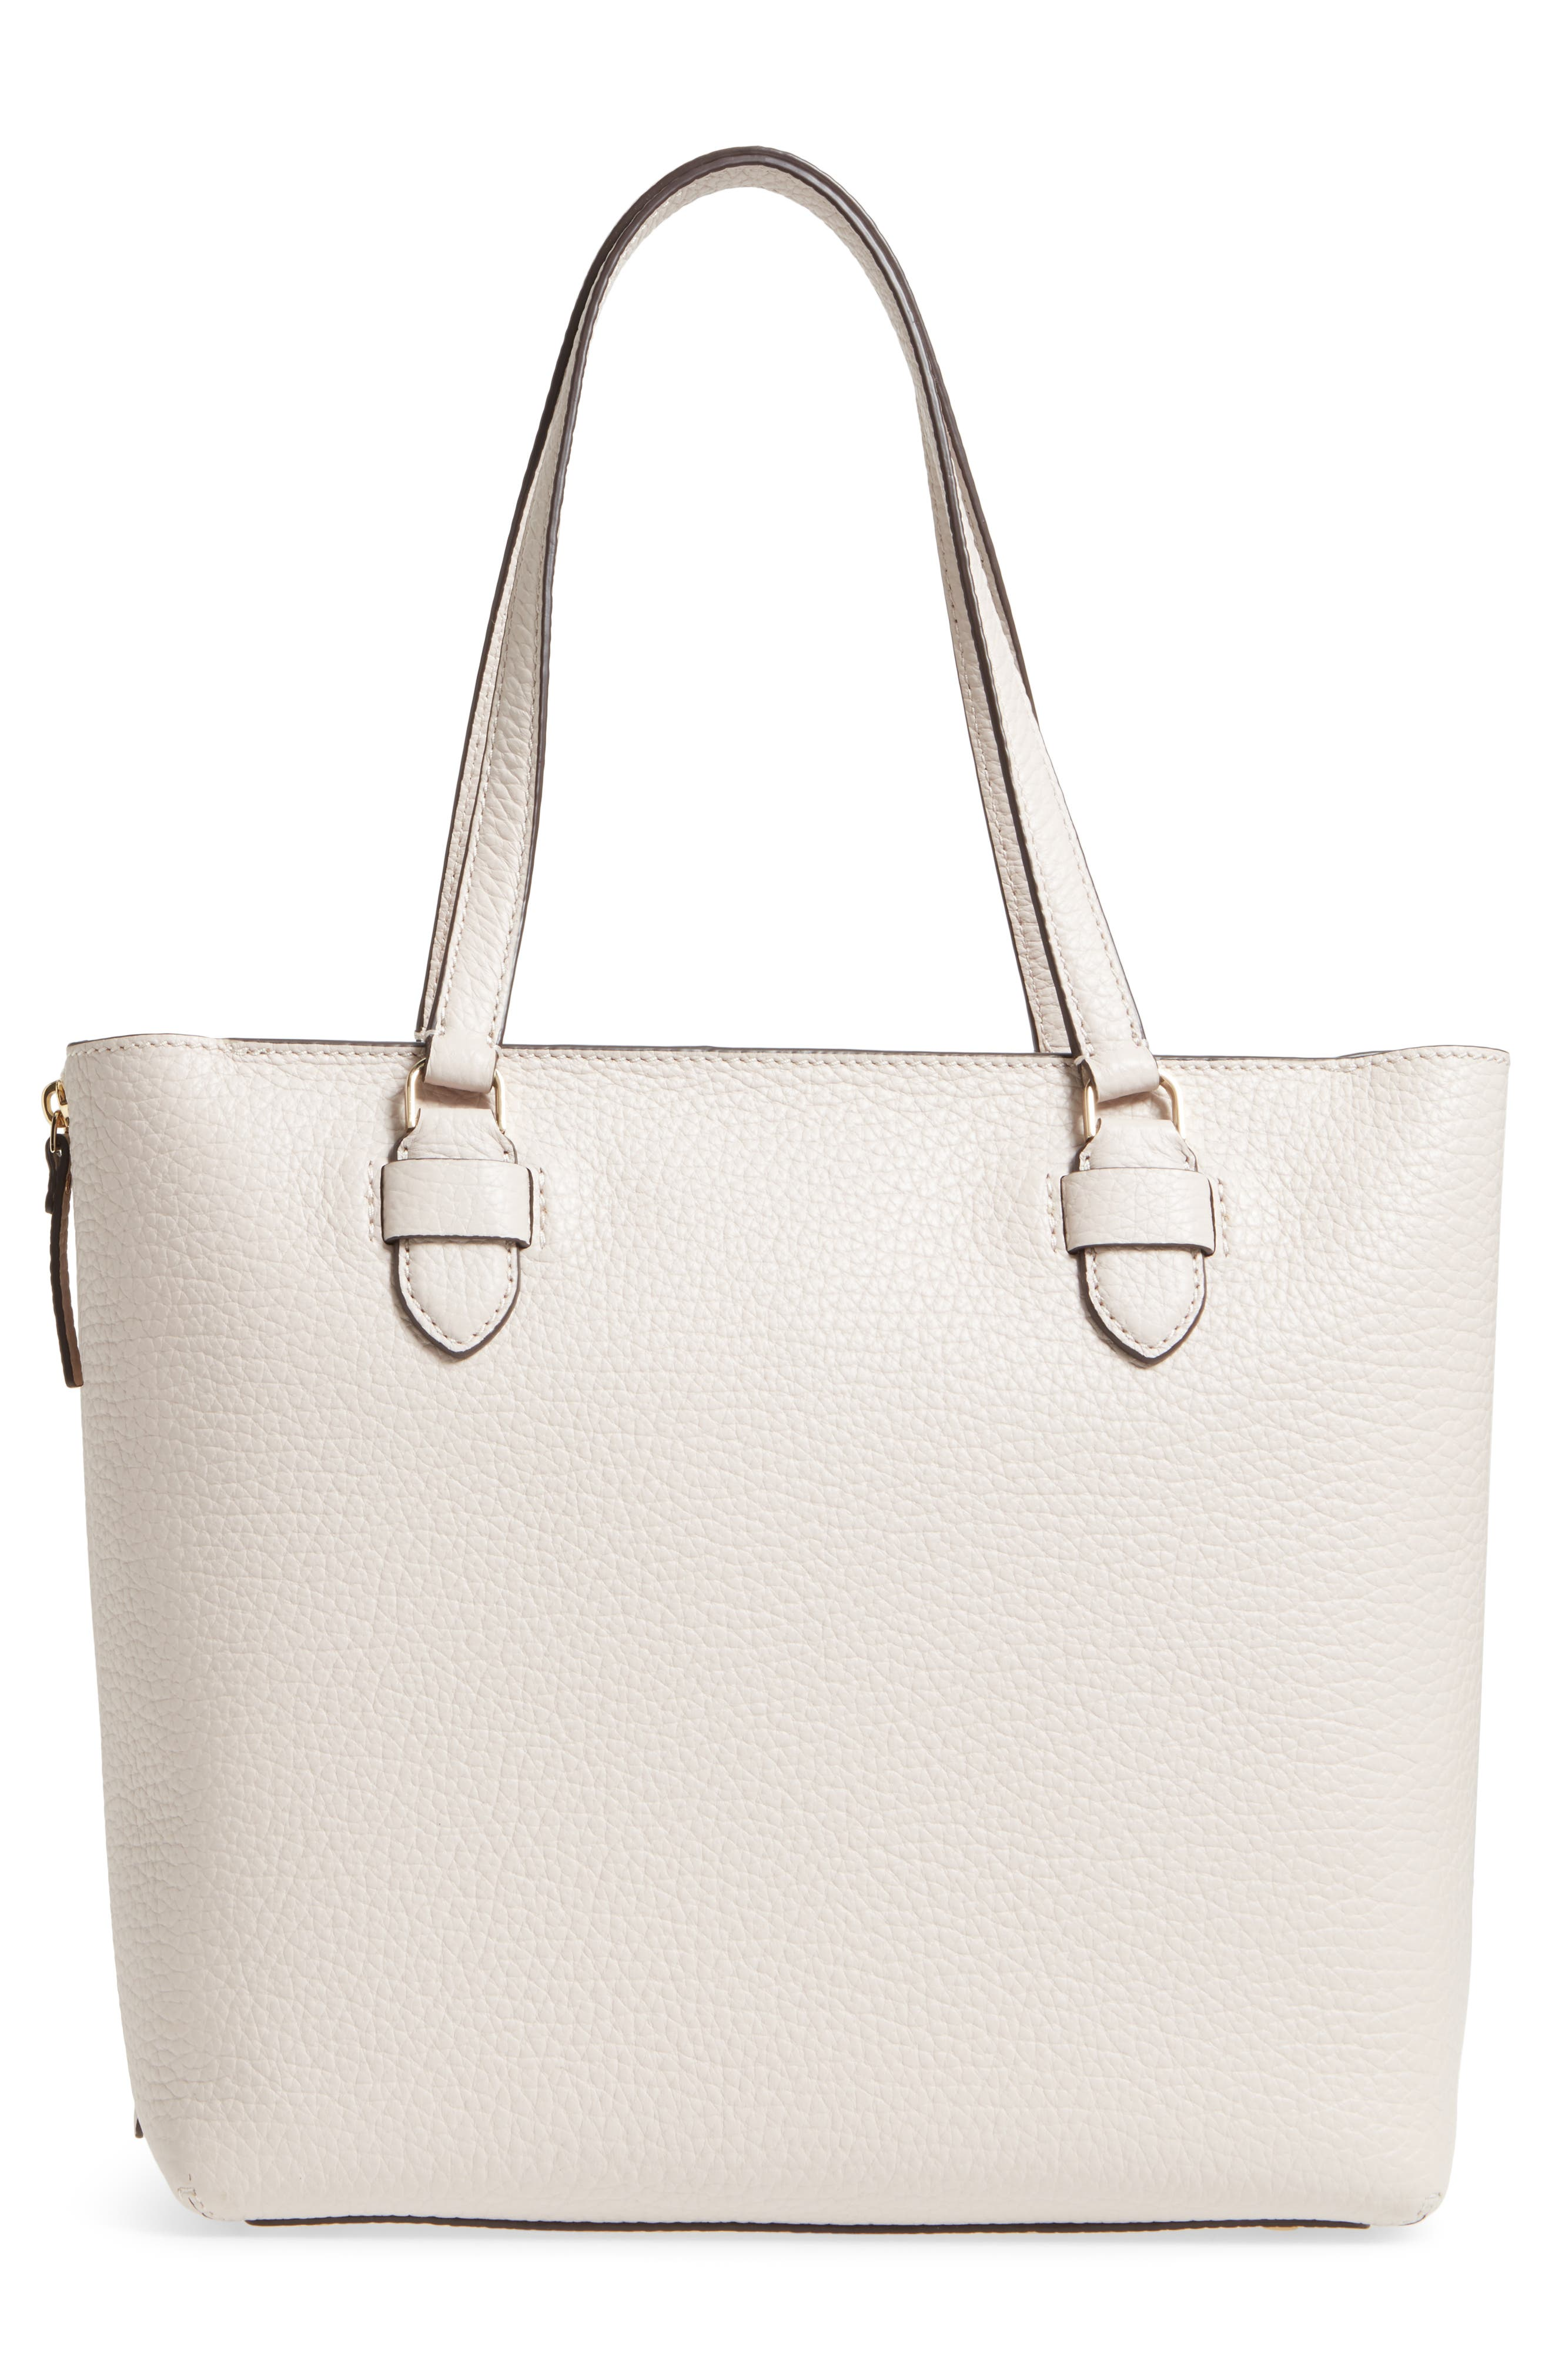 carter street - selena leather tote,                             Alternate thumbnail 6, color,